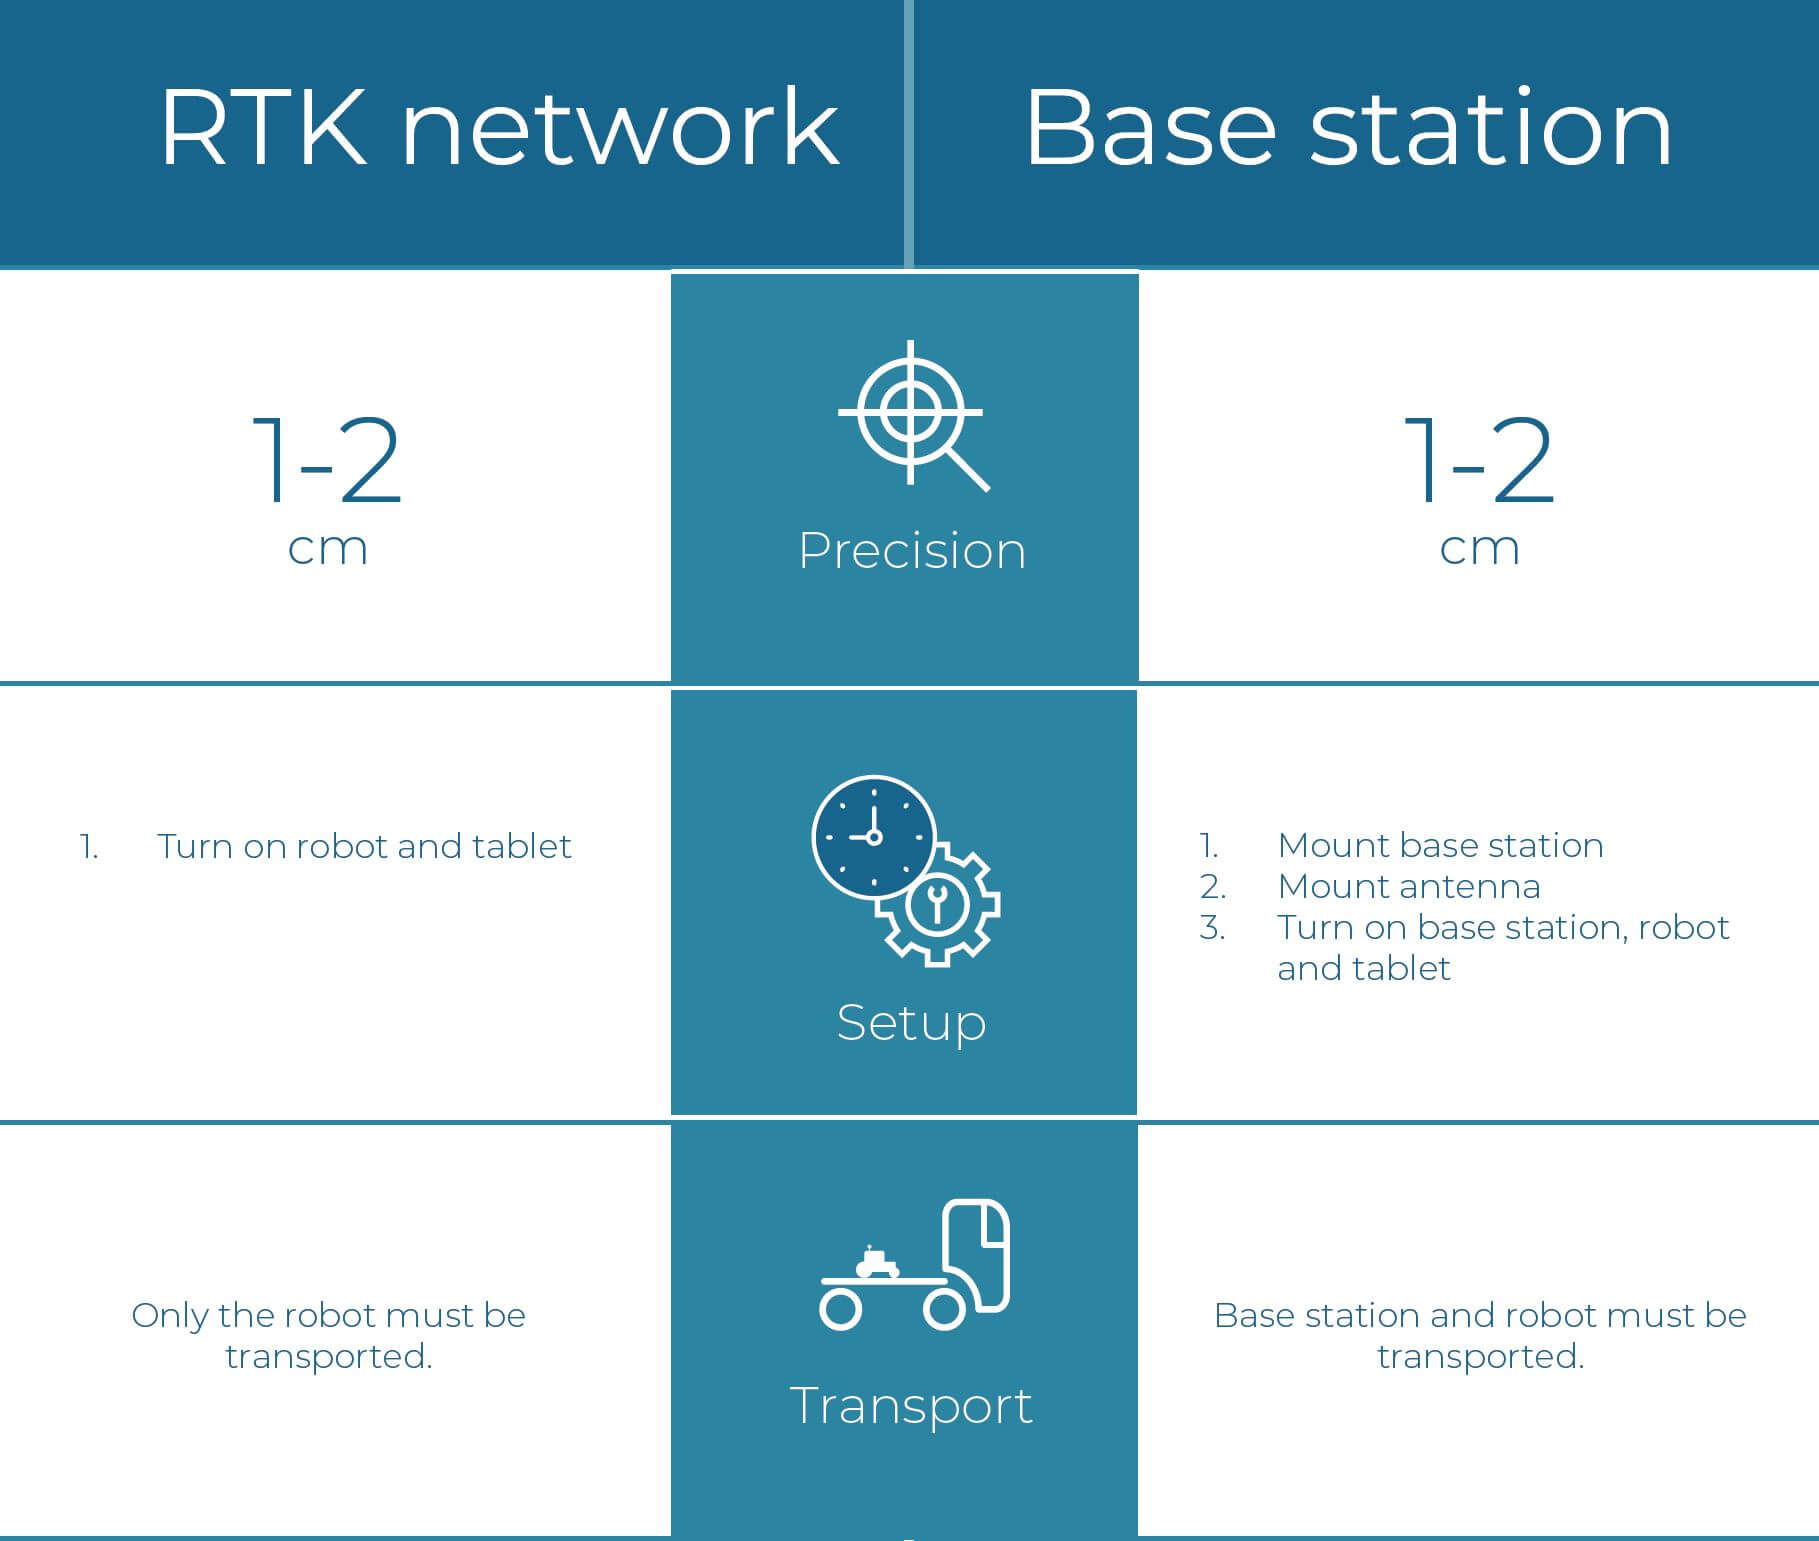 https://tinymobilerobots.com/wp-content/uploads/2018/12/RTK-network-vs-Base-station.jpg